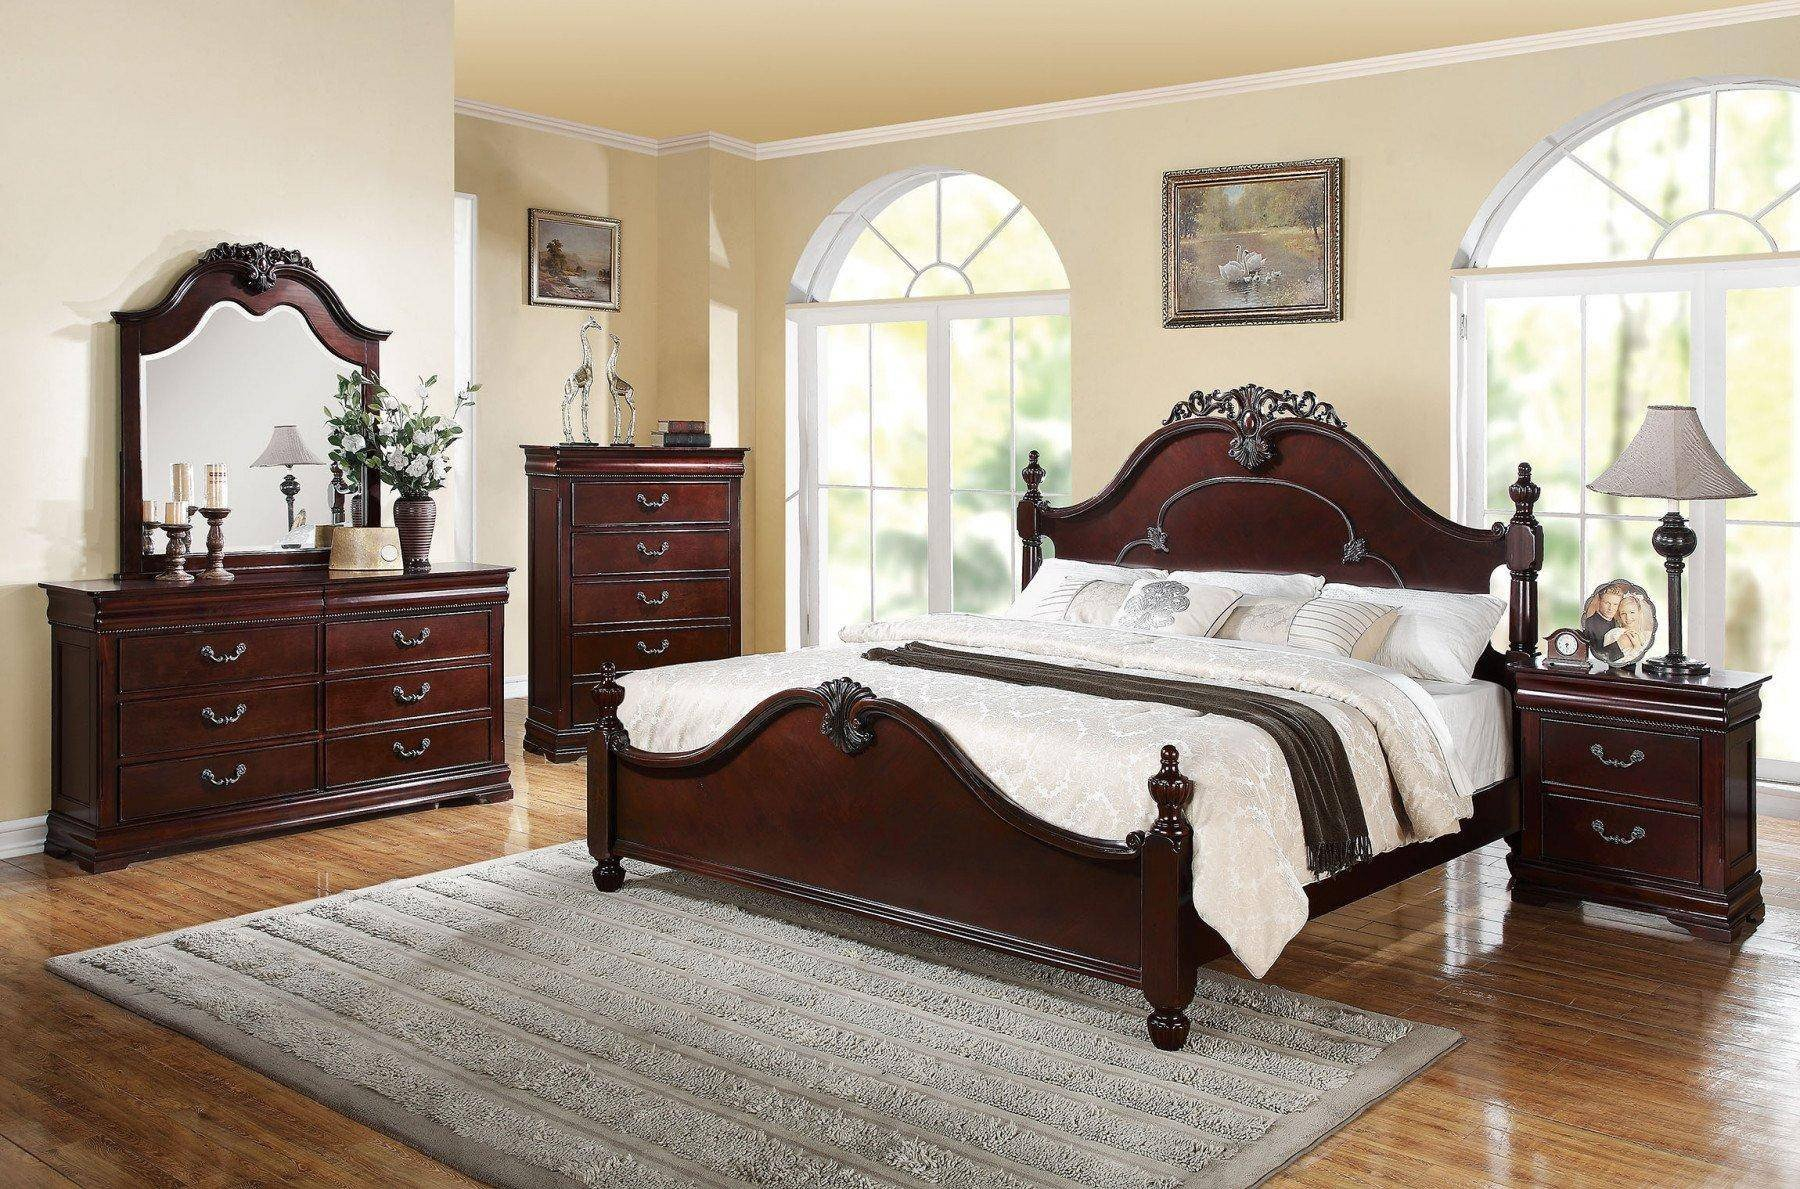 4 Poster Bedroom Set Fresh Cherry Poster King Bedroom Set 5 Pcs Acme Furniture Ek